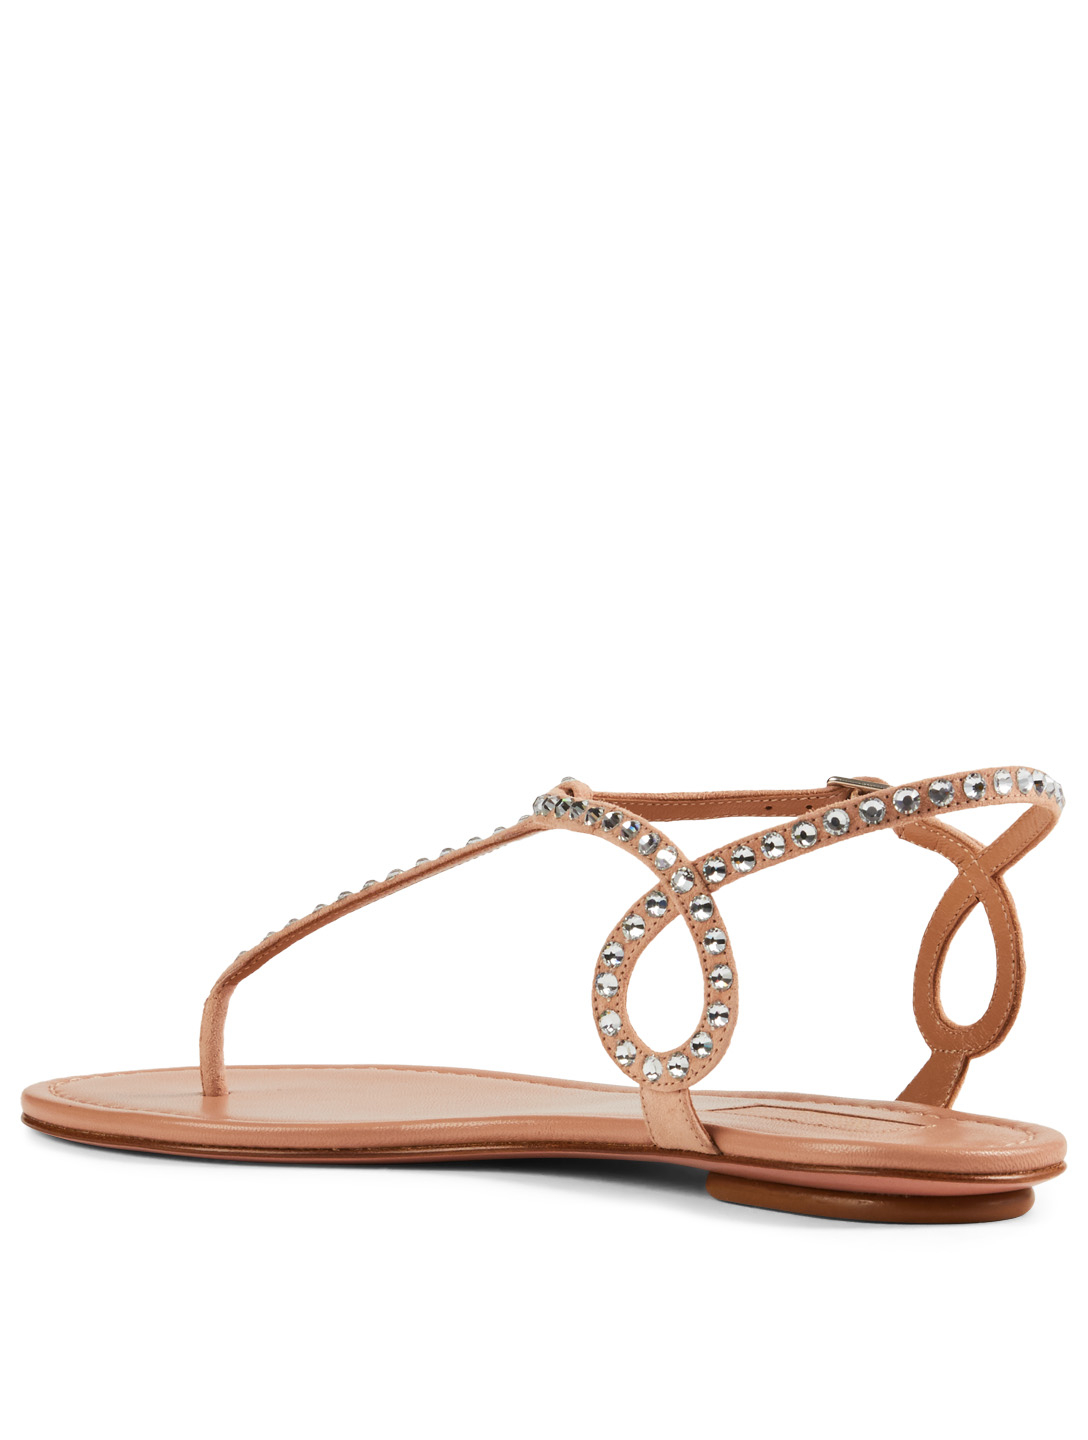 AQUAZZURA Almost Bare Suede Sandals With Crystals Women's Neutral